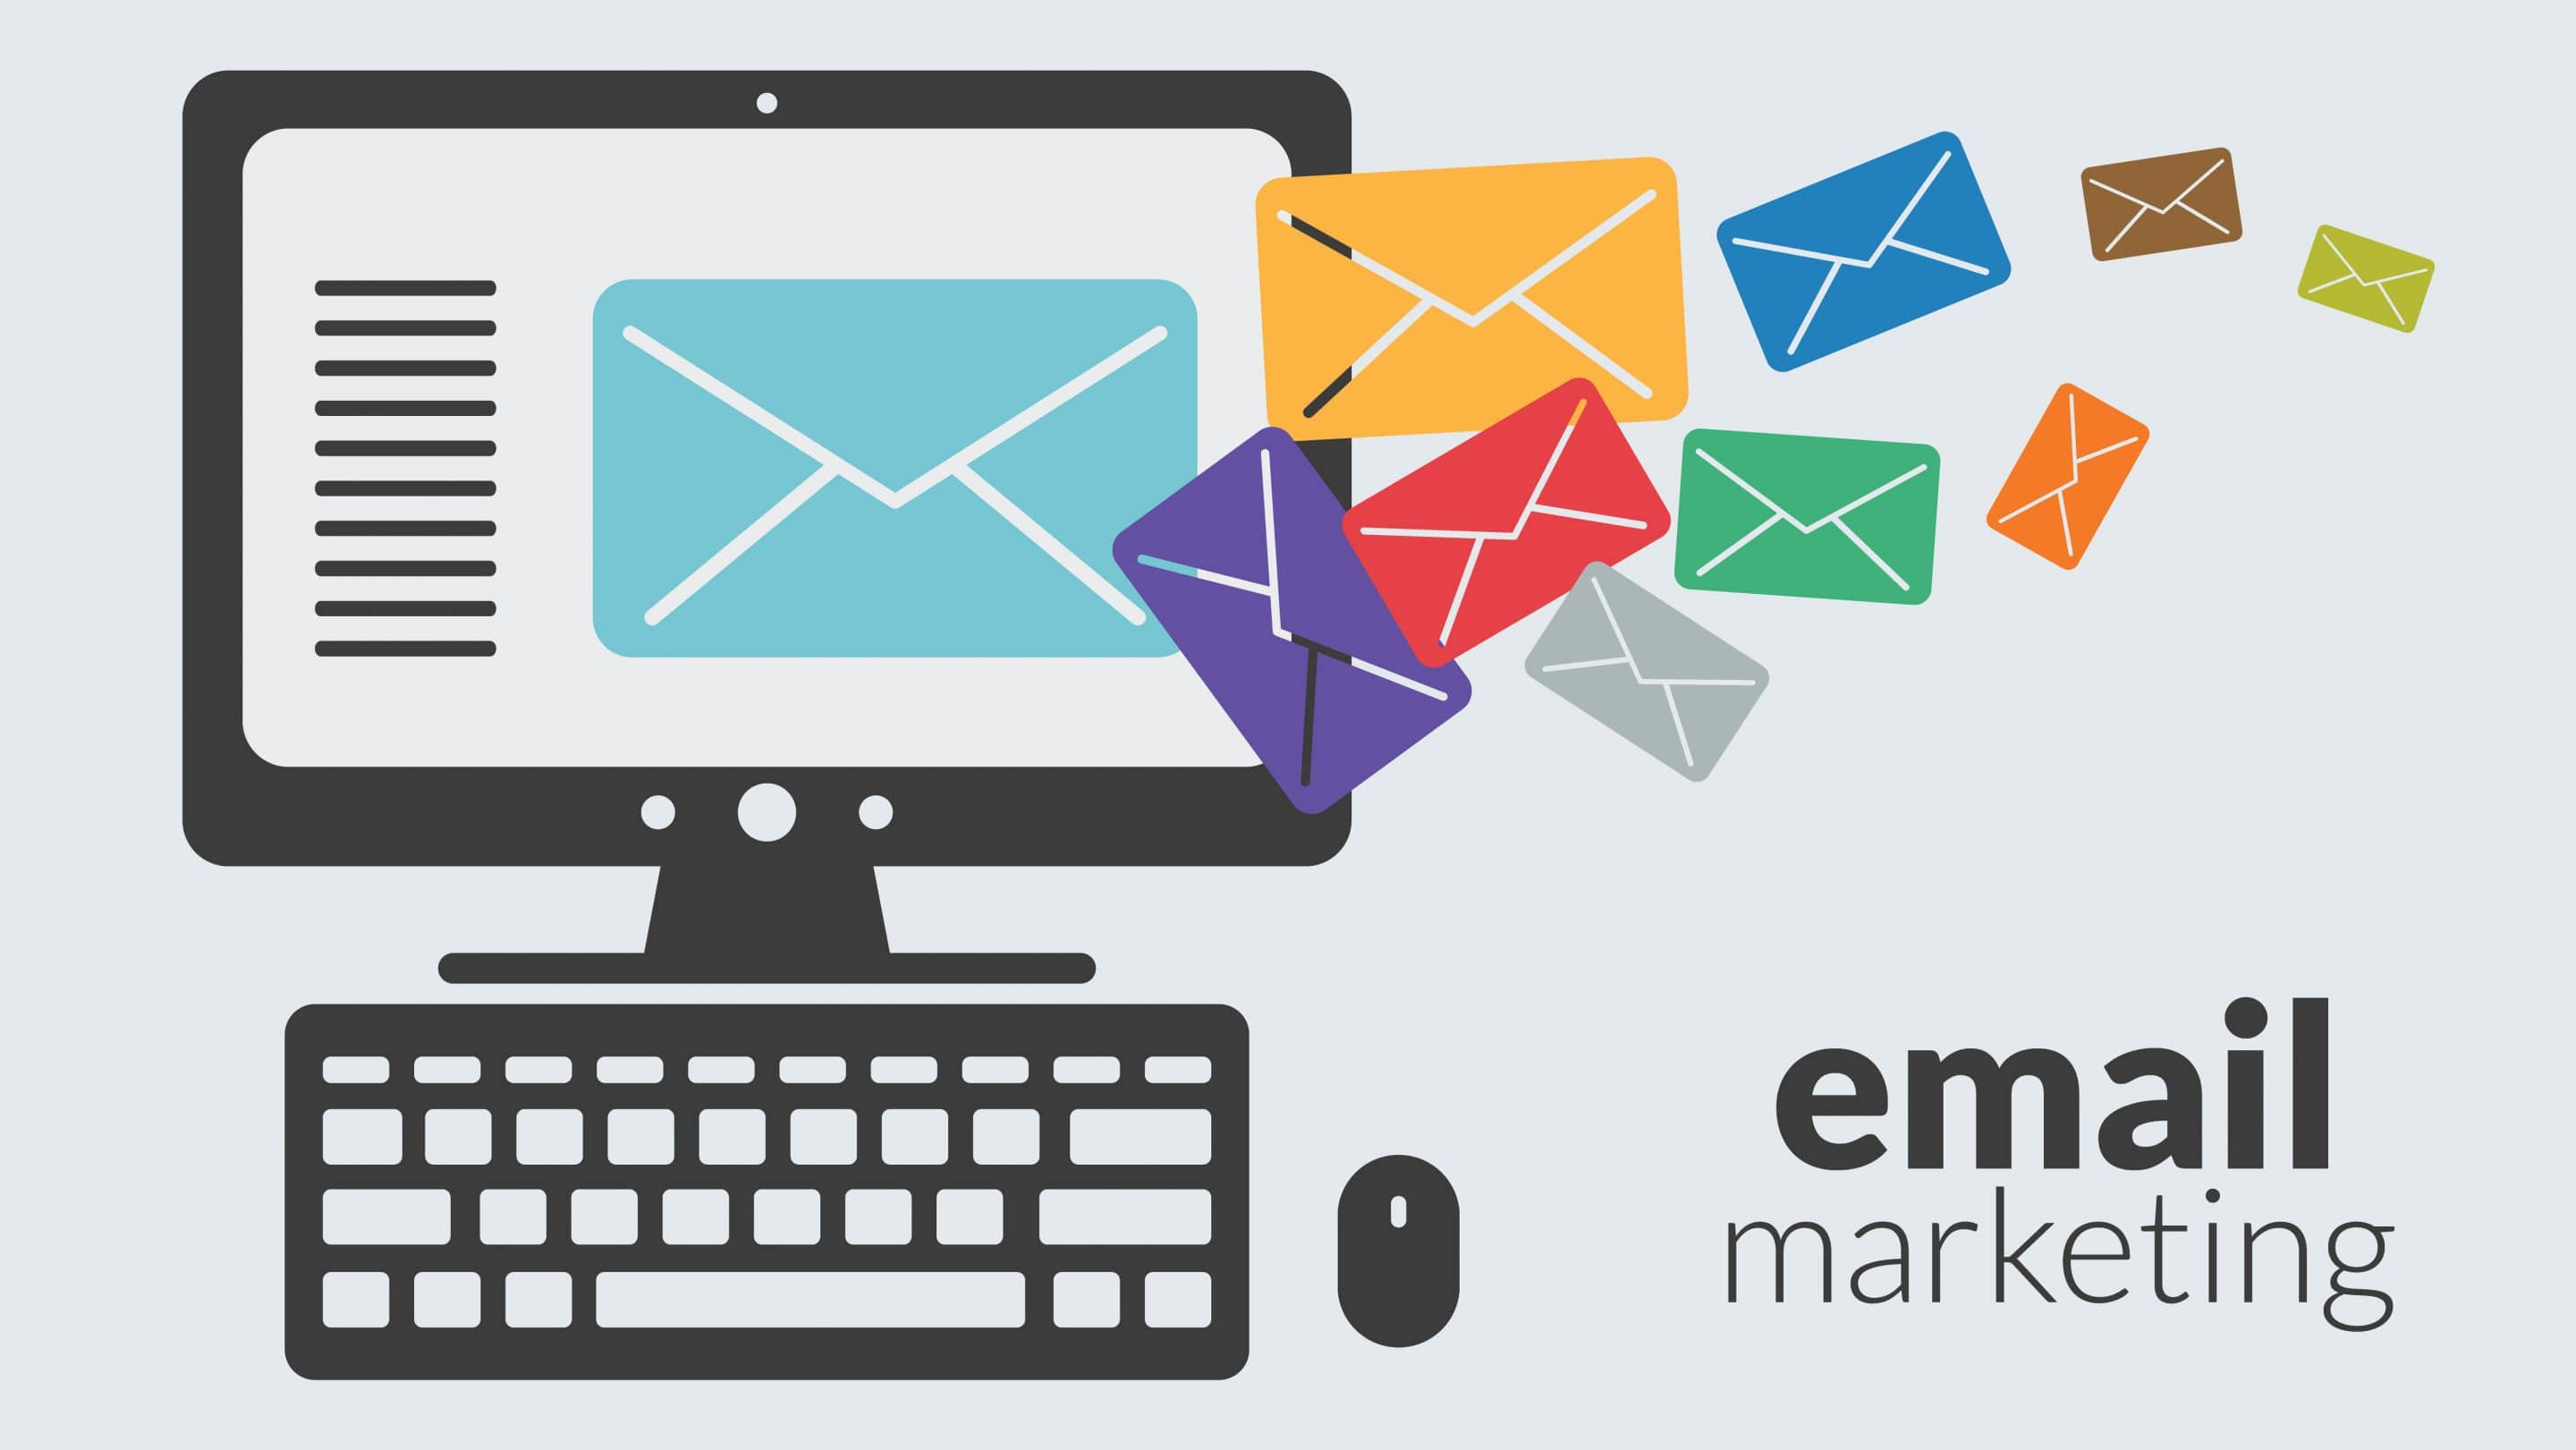 Video: Why You Should Invest in Email Marketing